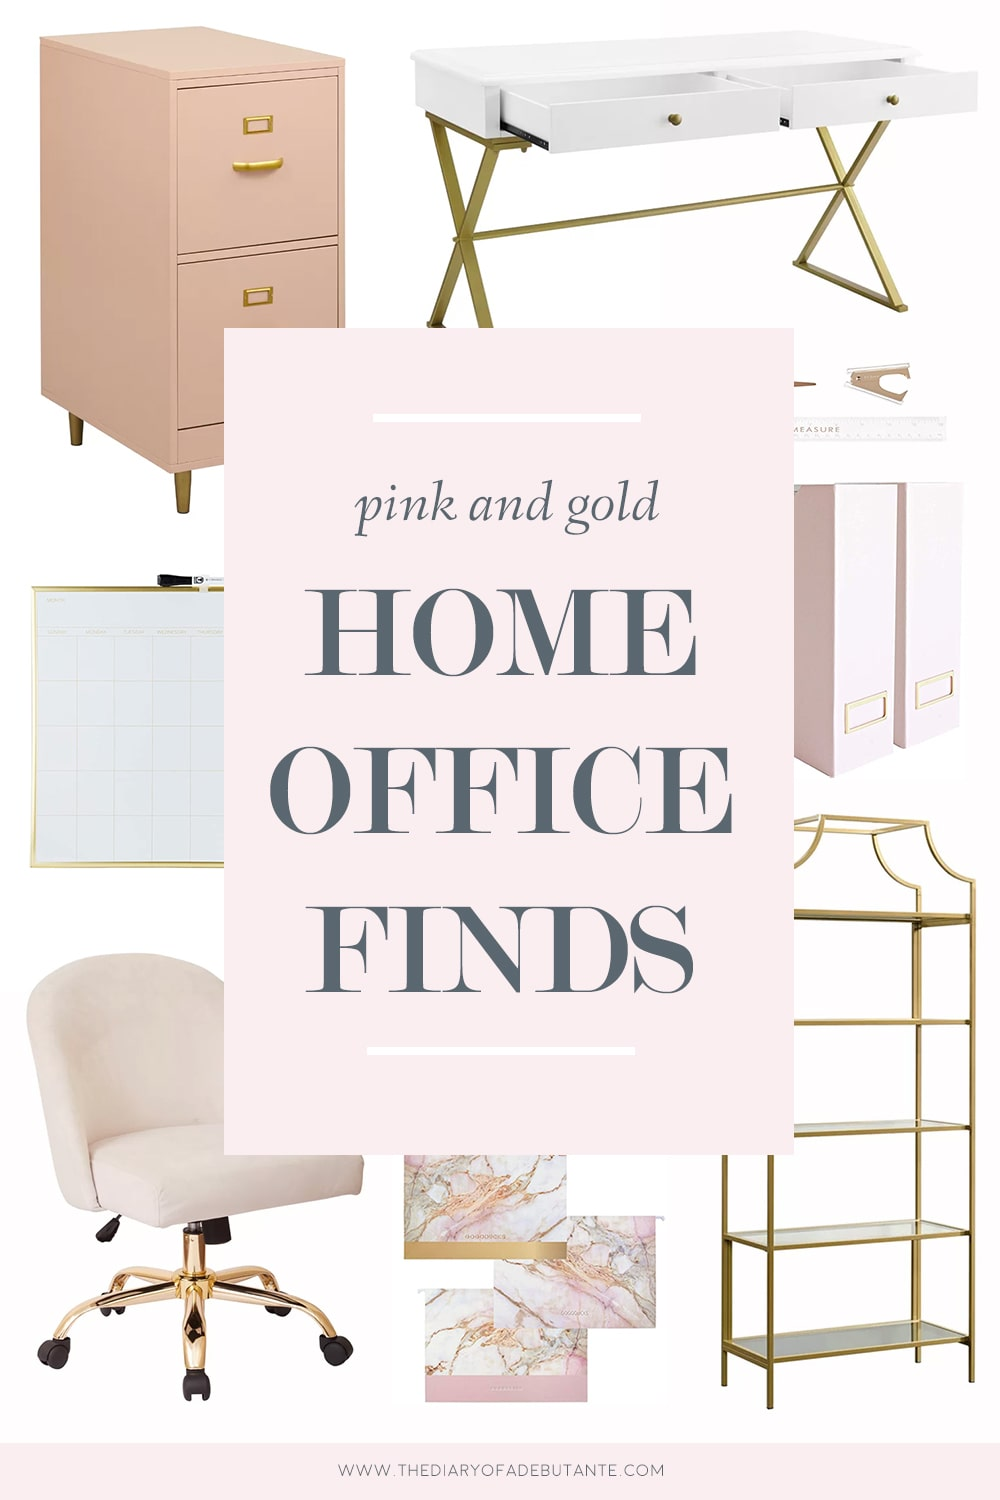 Southern lifestyle blogger Stephanie Ziajka rounds up affordable pink and gold office decor on Diary of a Debutante